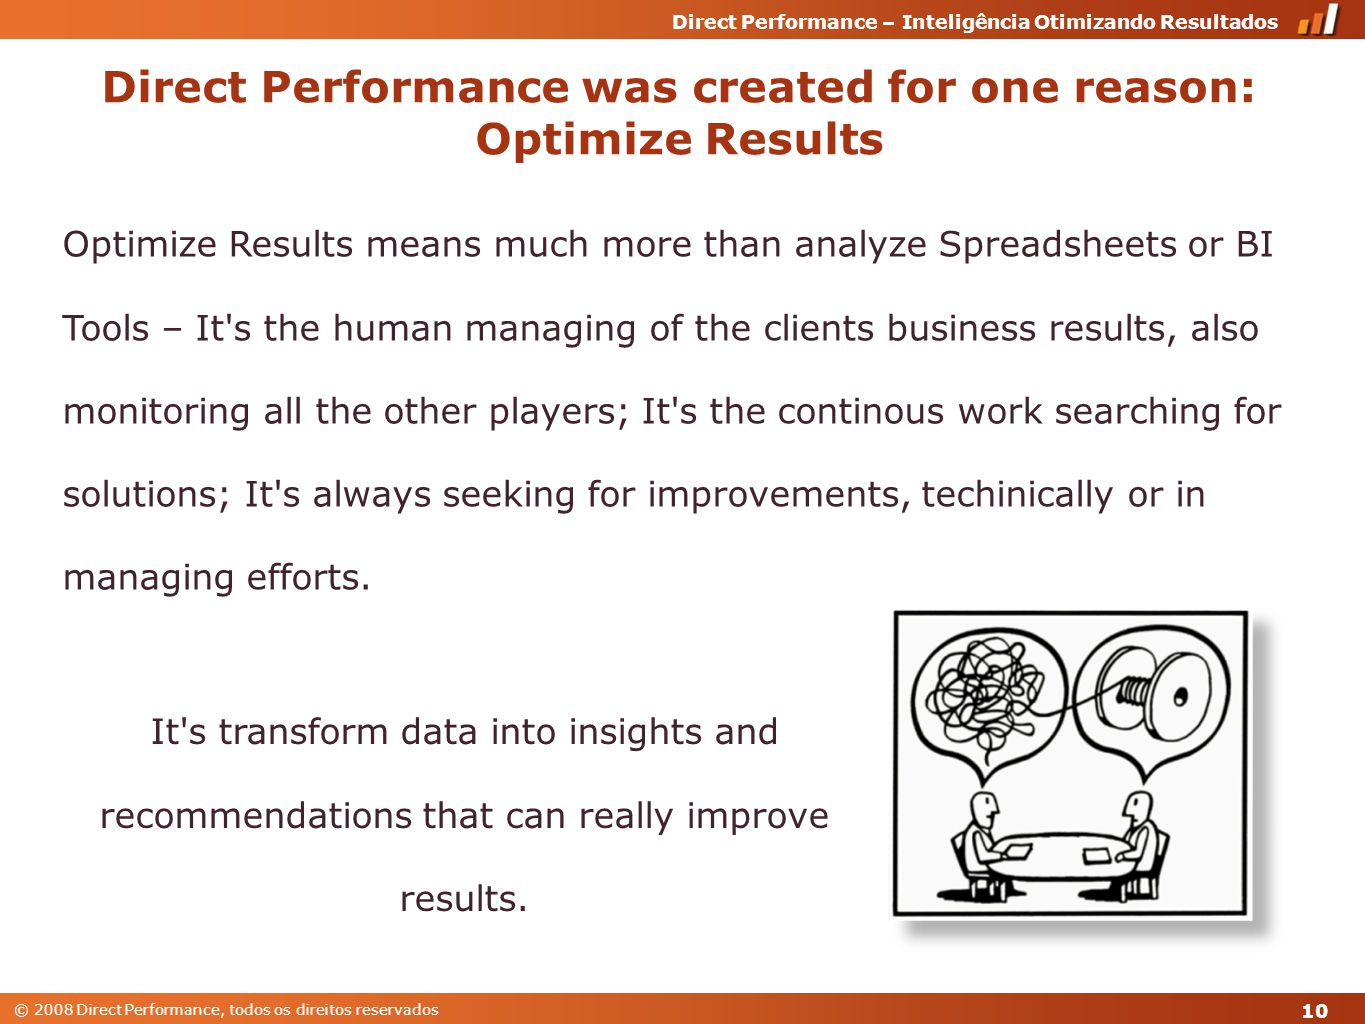 © 2008 Direct Performance, todos os direitos reservados Direct Performance – Inteligência Otimizando Resultados Optimize Results means much more than analyze Spreadsheets or BI Tools – It s the human managing of the clients business results, also monitoring all the other players; It s the continous work searching for solutions; It s always seeking for improvements, techinically or in managing efforts.